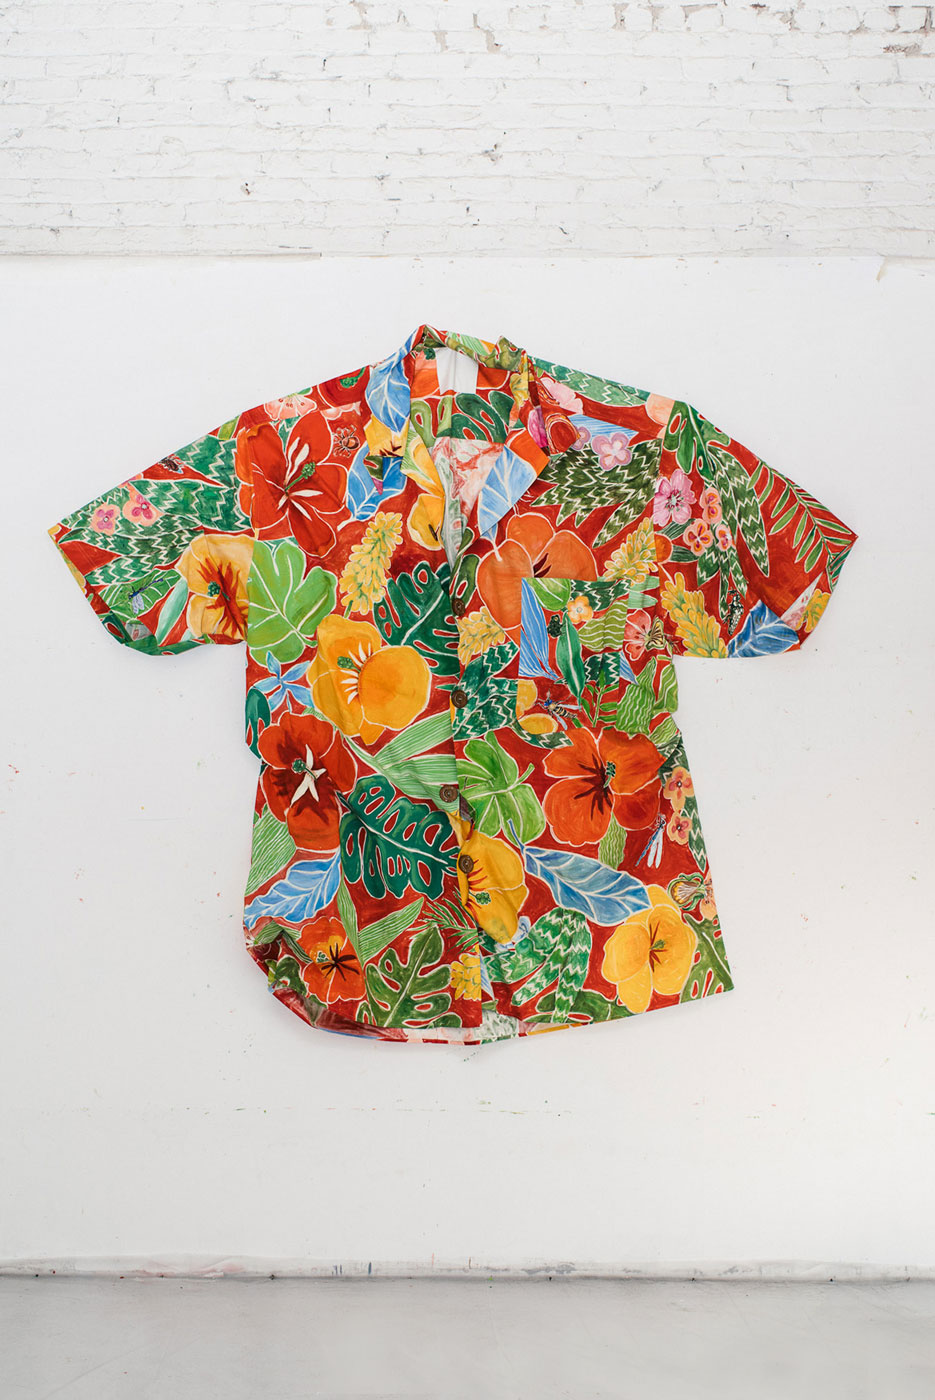 Sidney Russell. Big Wave Paradise Hawaiian Shirt, 2013.